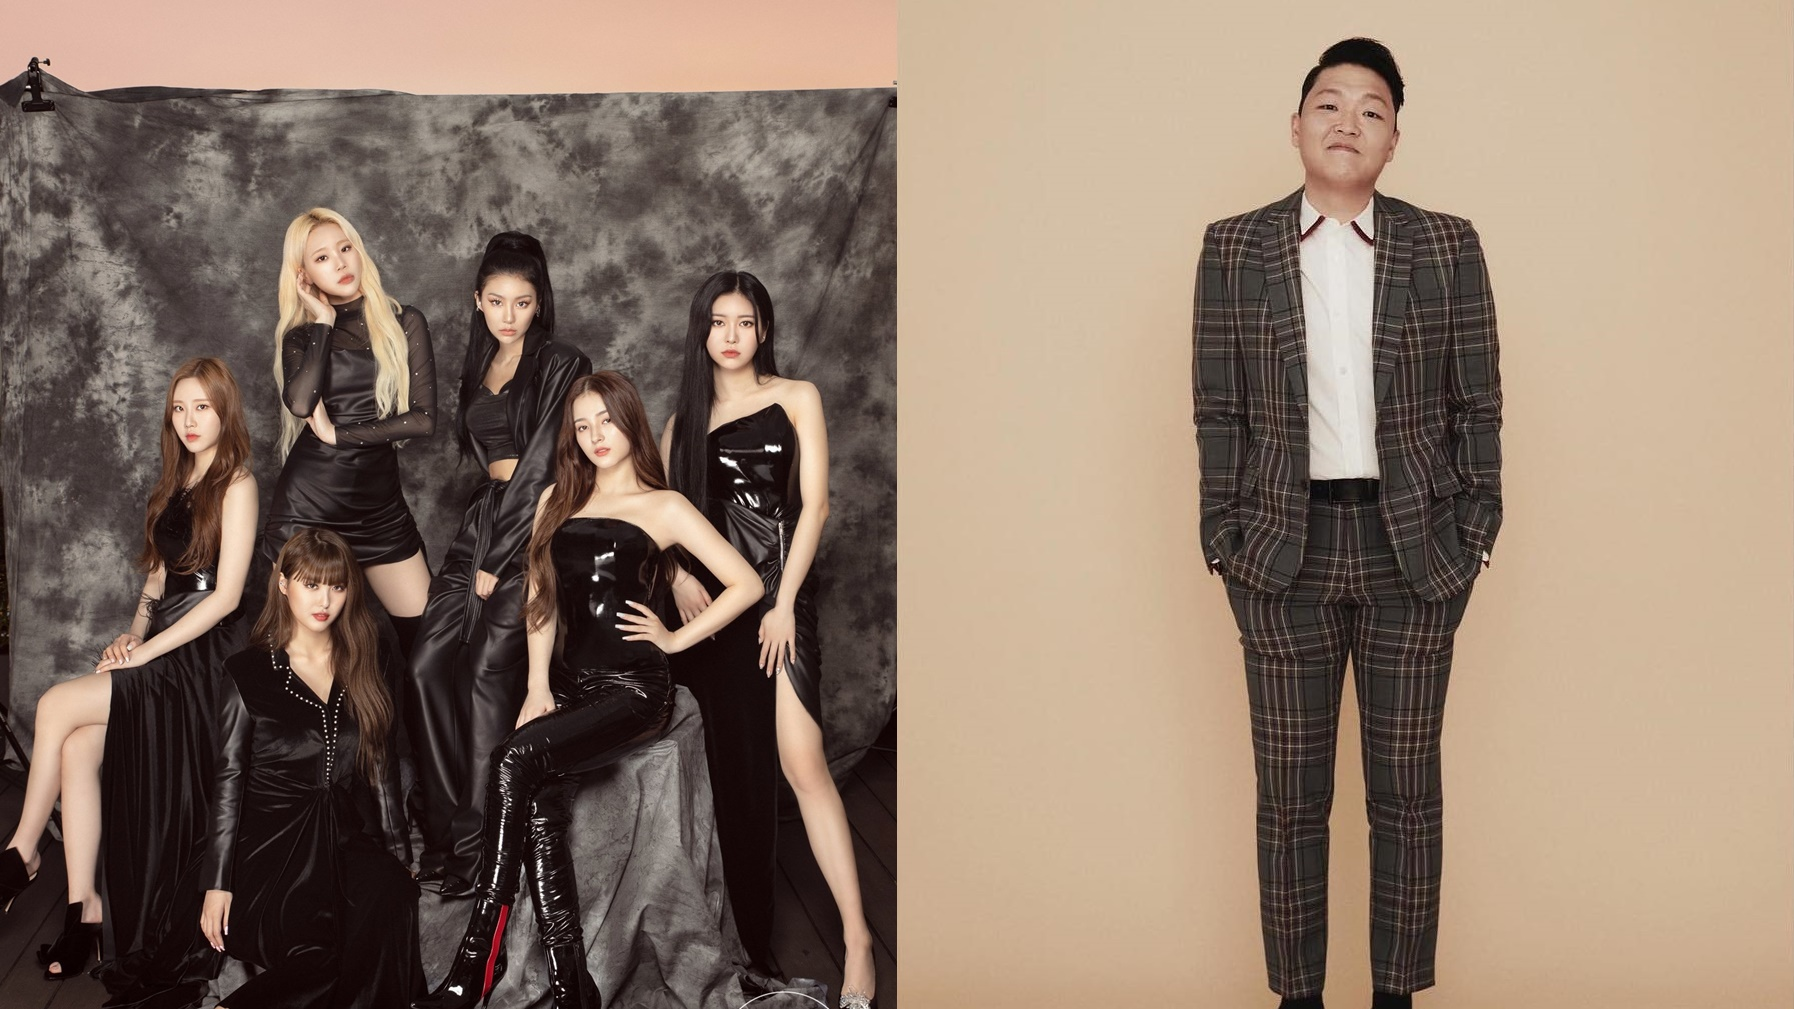 Confirmed Coming Back, PSY Will Participate in MOMOLAND's New Single